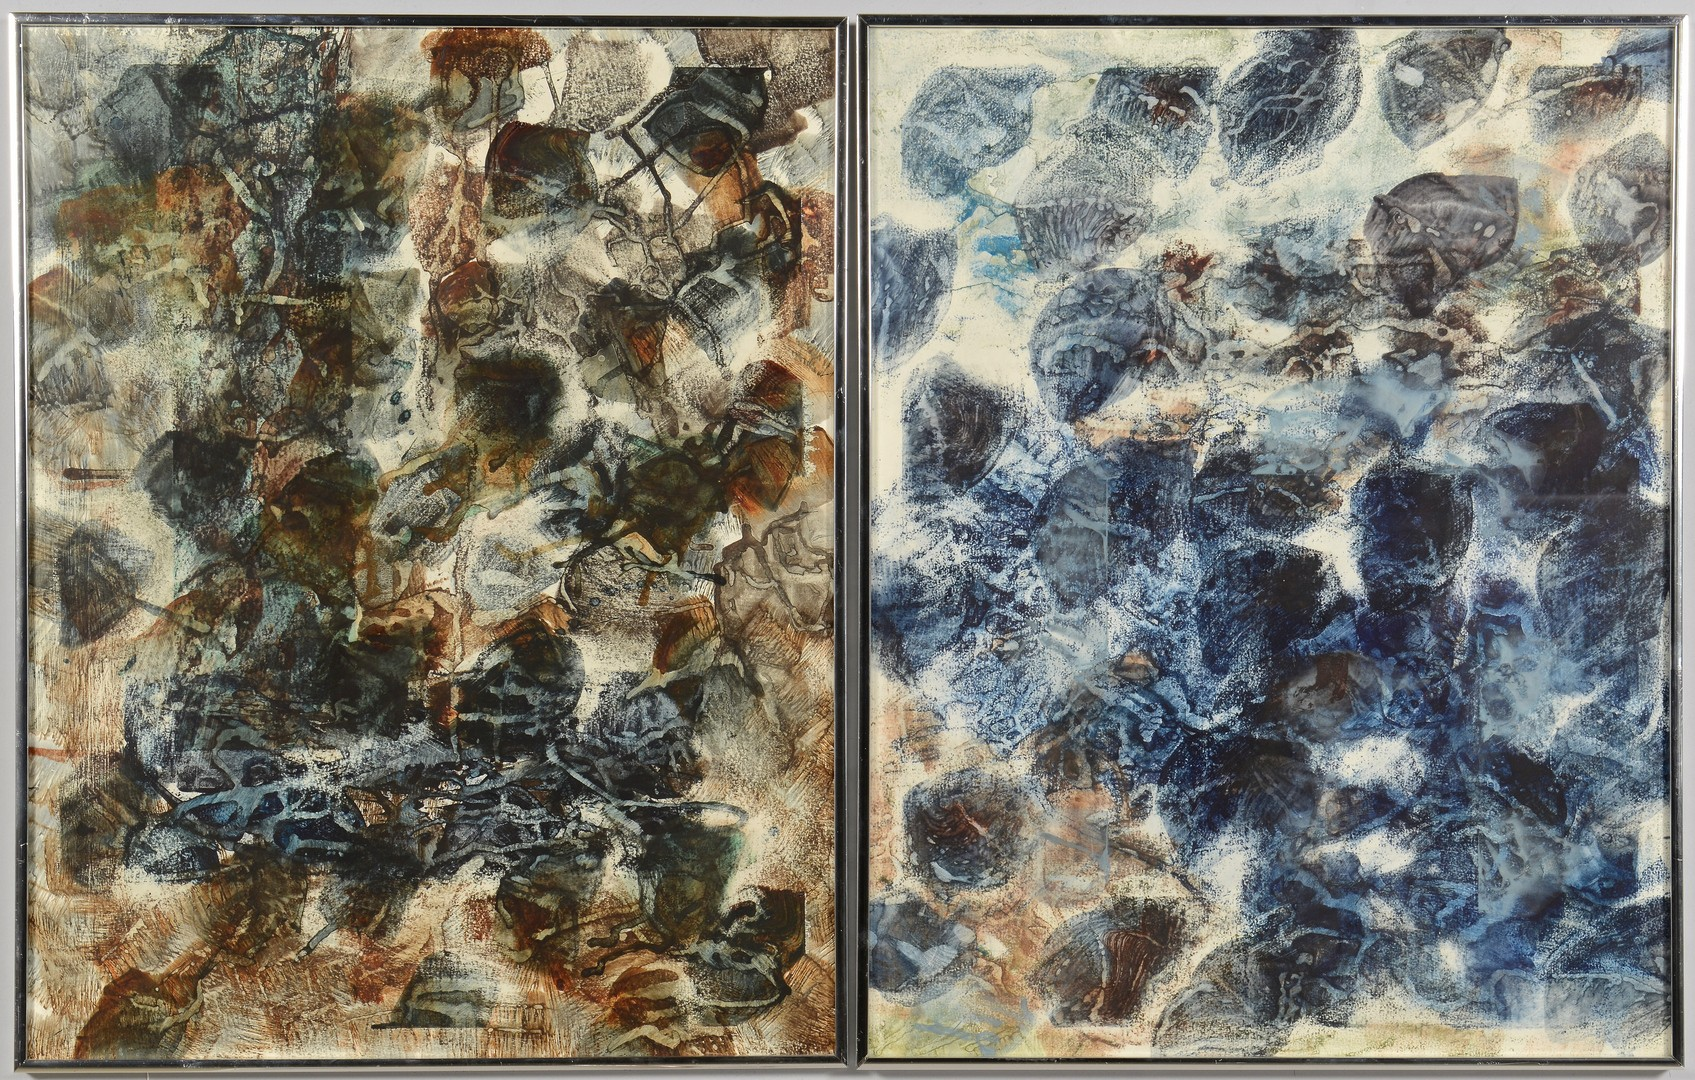 Lot 4010223: Gary E. Gee Abstract Watercolors